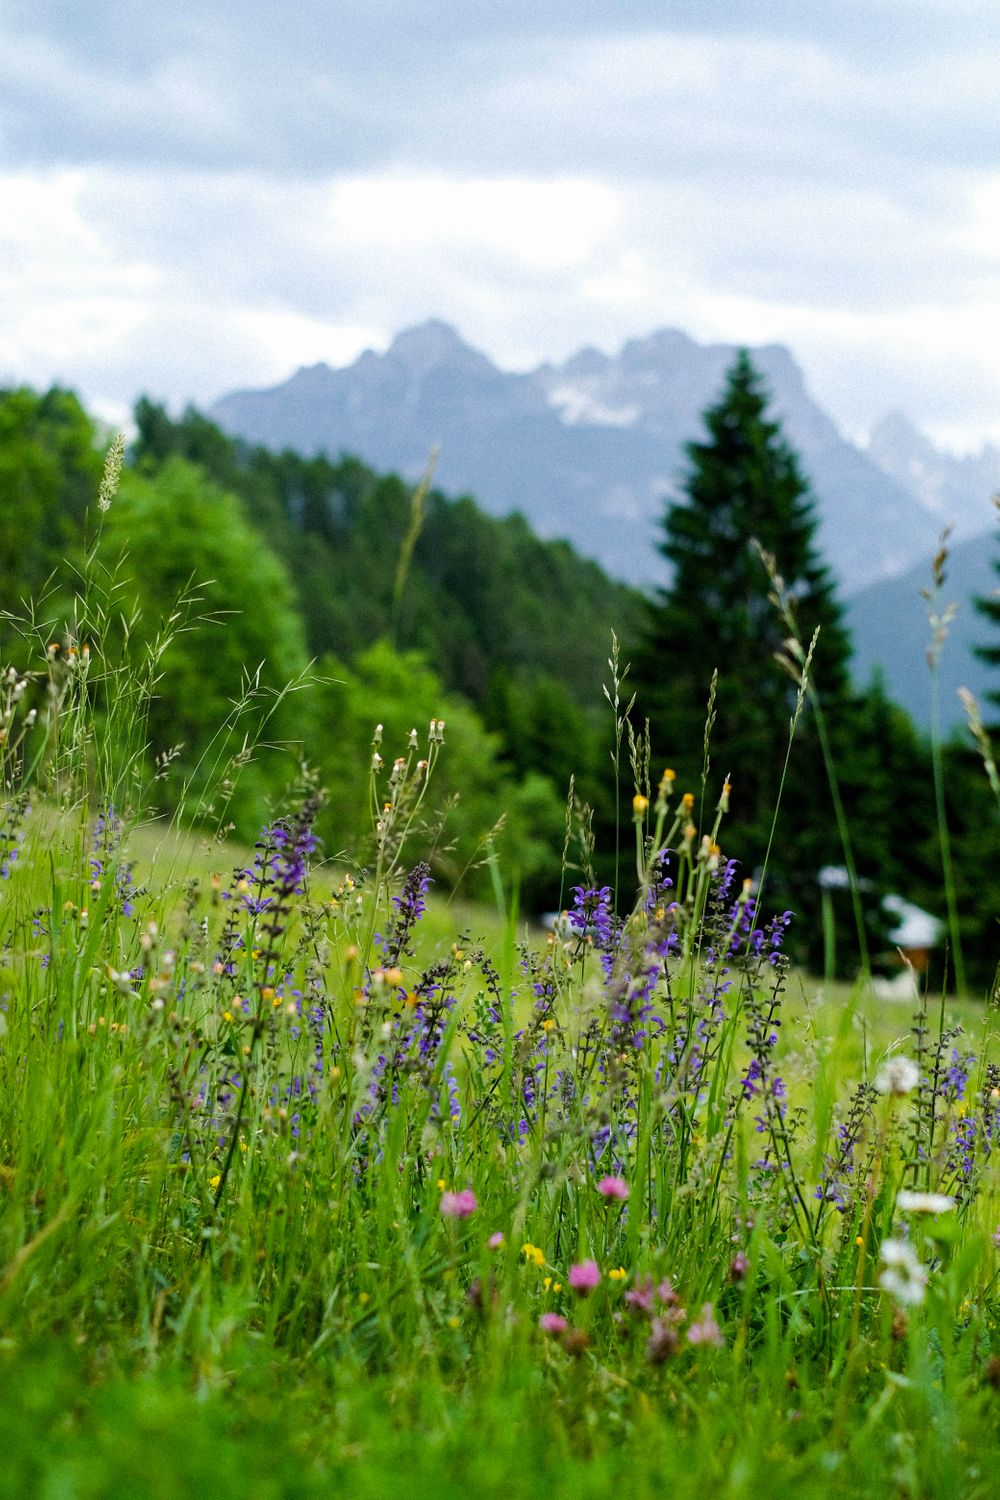 A grassy field full of flowers backdropped by forested slopes and mountains